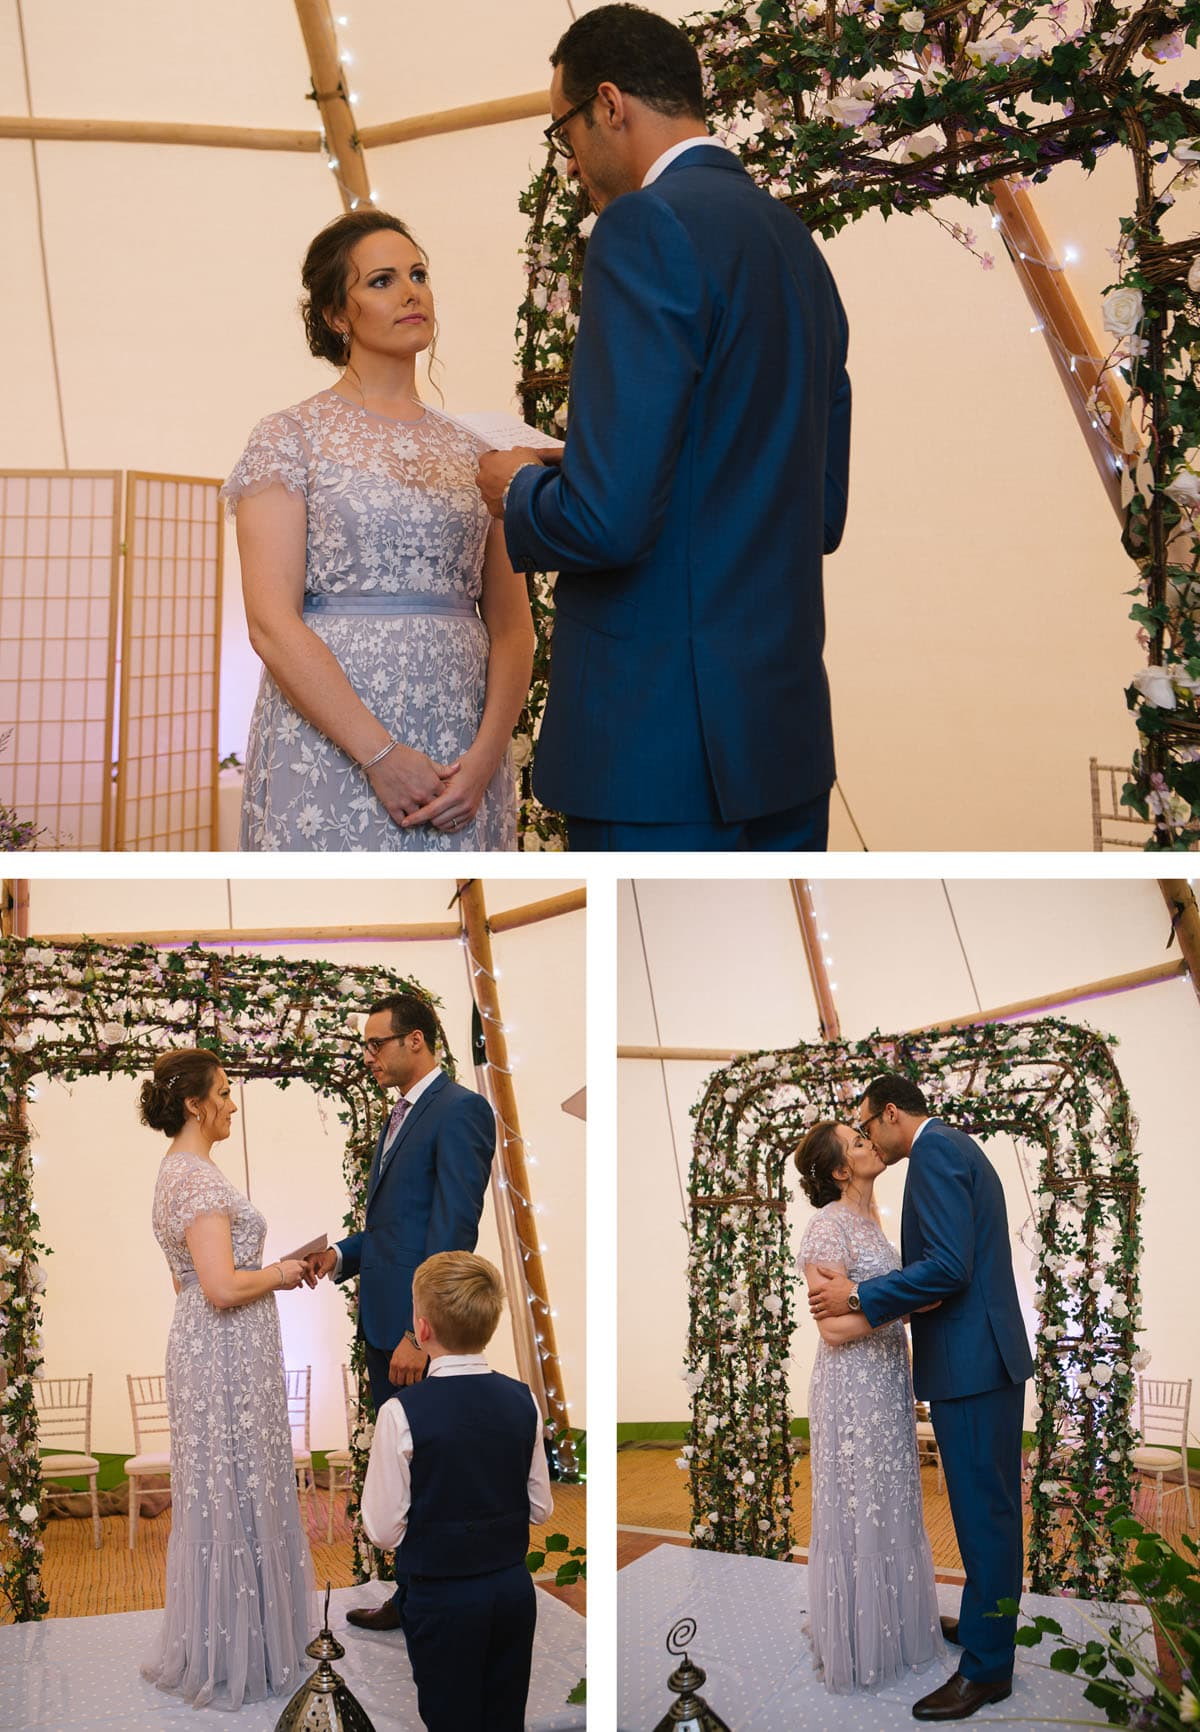 Collage of images of the wedding blessing inside the teepee